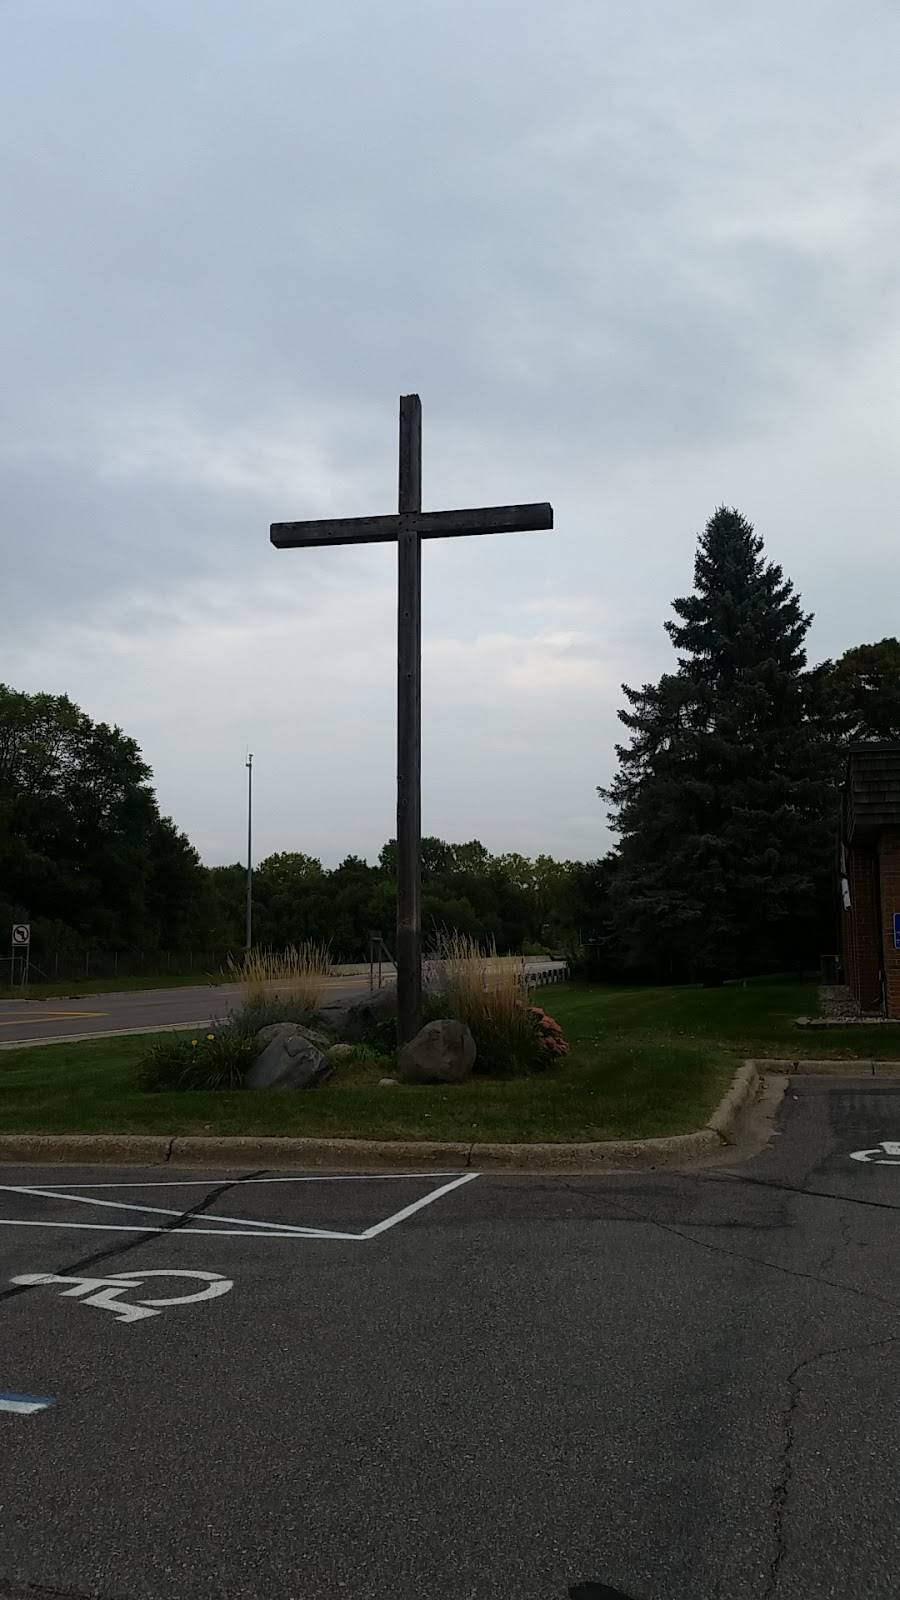 Christus Victor Lutheran Church - church  | Photo 3 of 4 | Address: 7510 Palomino Dr, Apple Valley, MN 55124, USA | Phone: (952) 454-6927